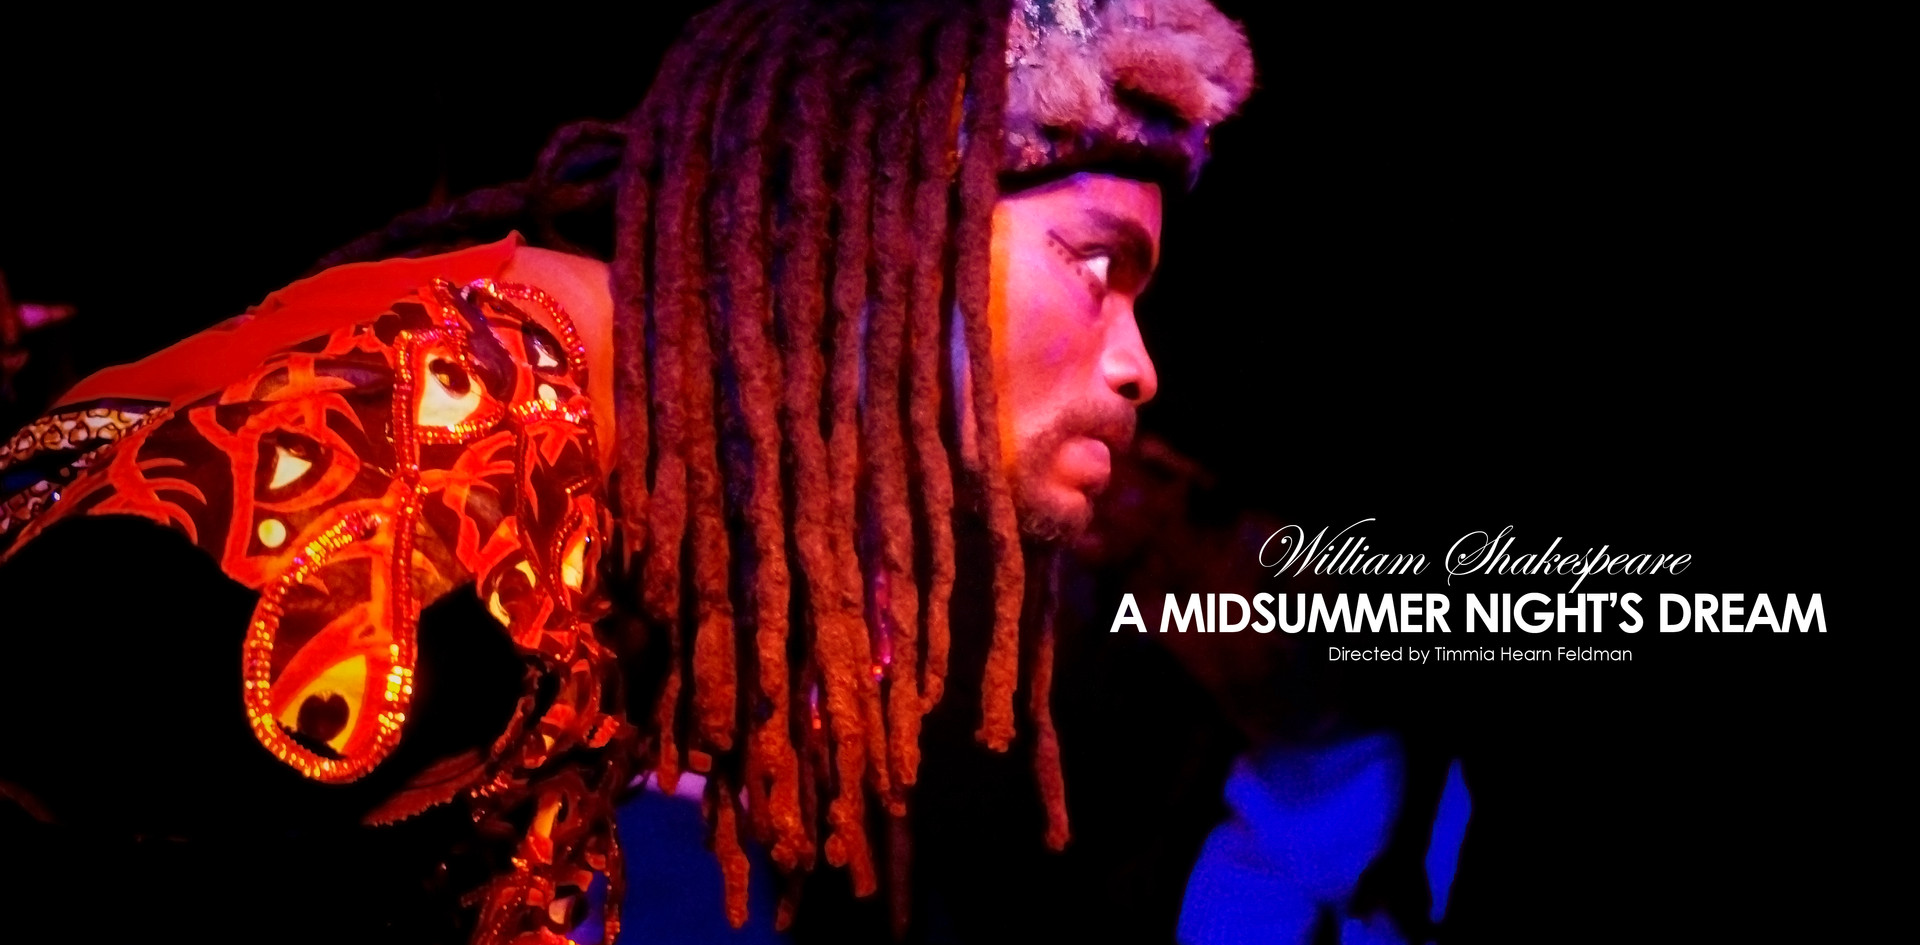 A Midsummer Night's Dream by William Shakespeare (2013)